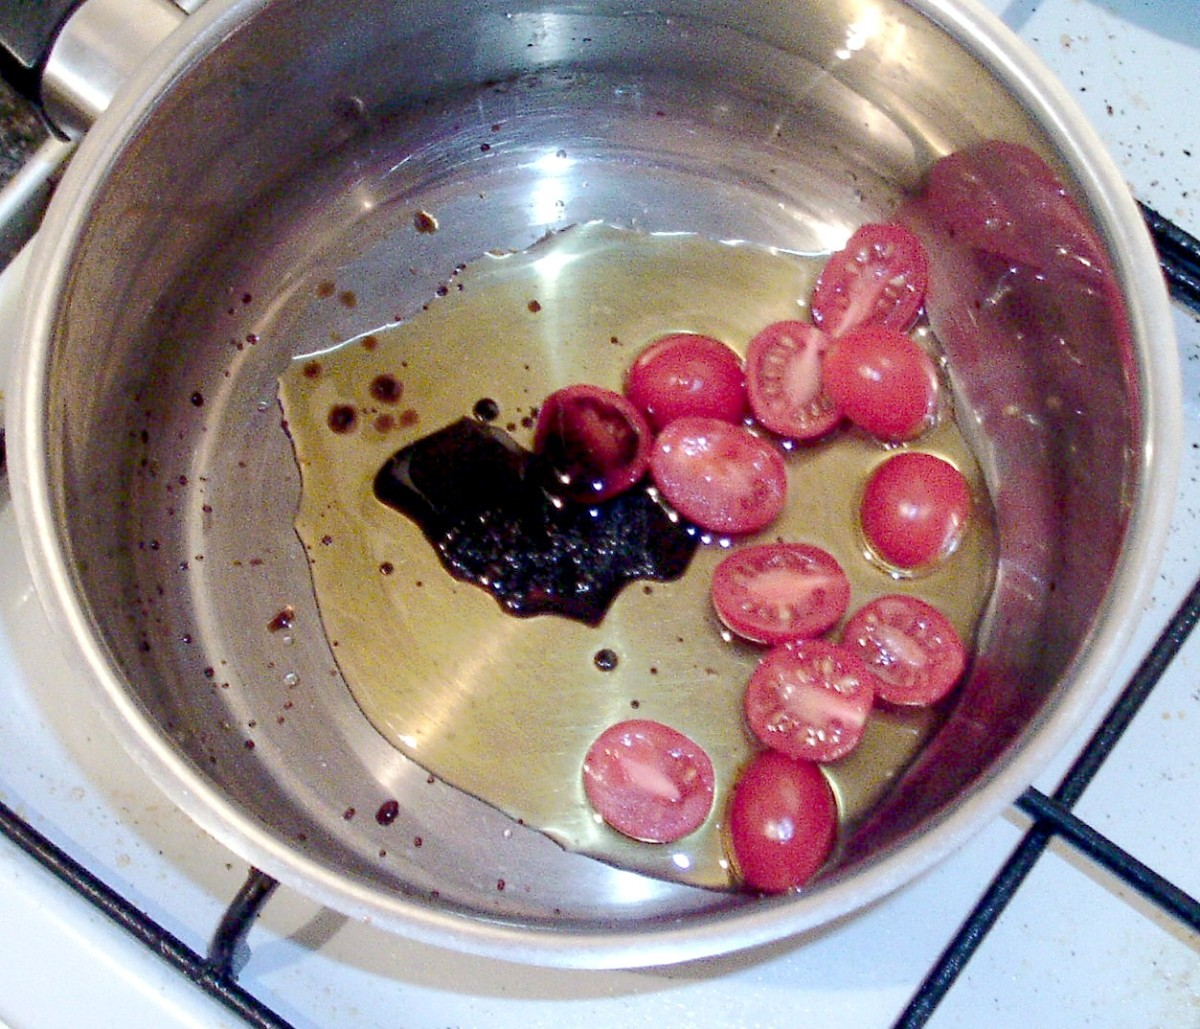 Starting to saute tomatoes in balsamic vinegar and olive oil